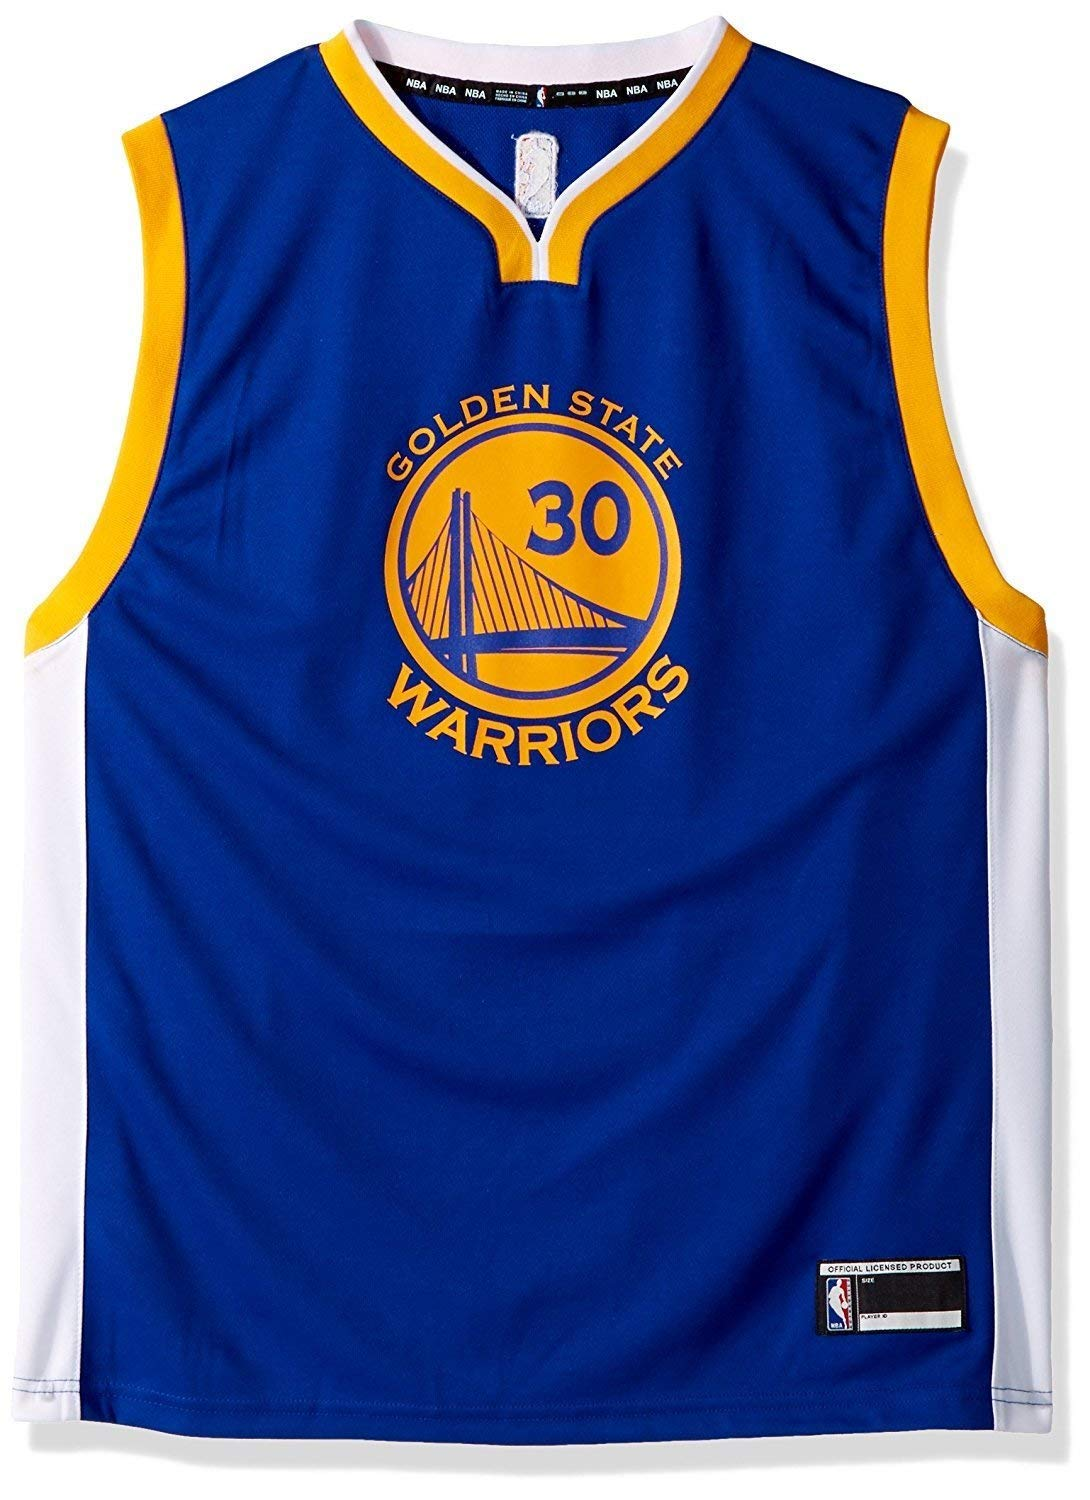 Outerstuff Stephen Curry Golden State Warriors #30 Blue Youth Road Replica Jersey (Small 8)